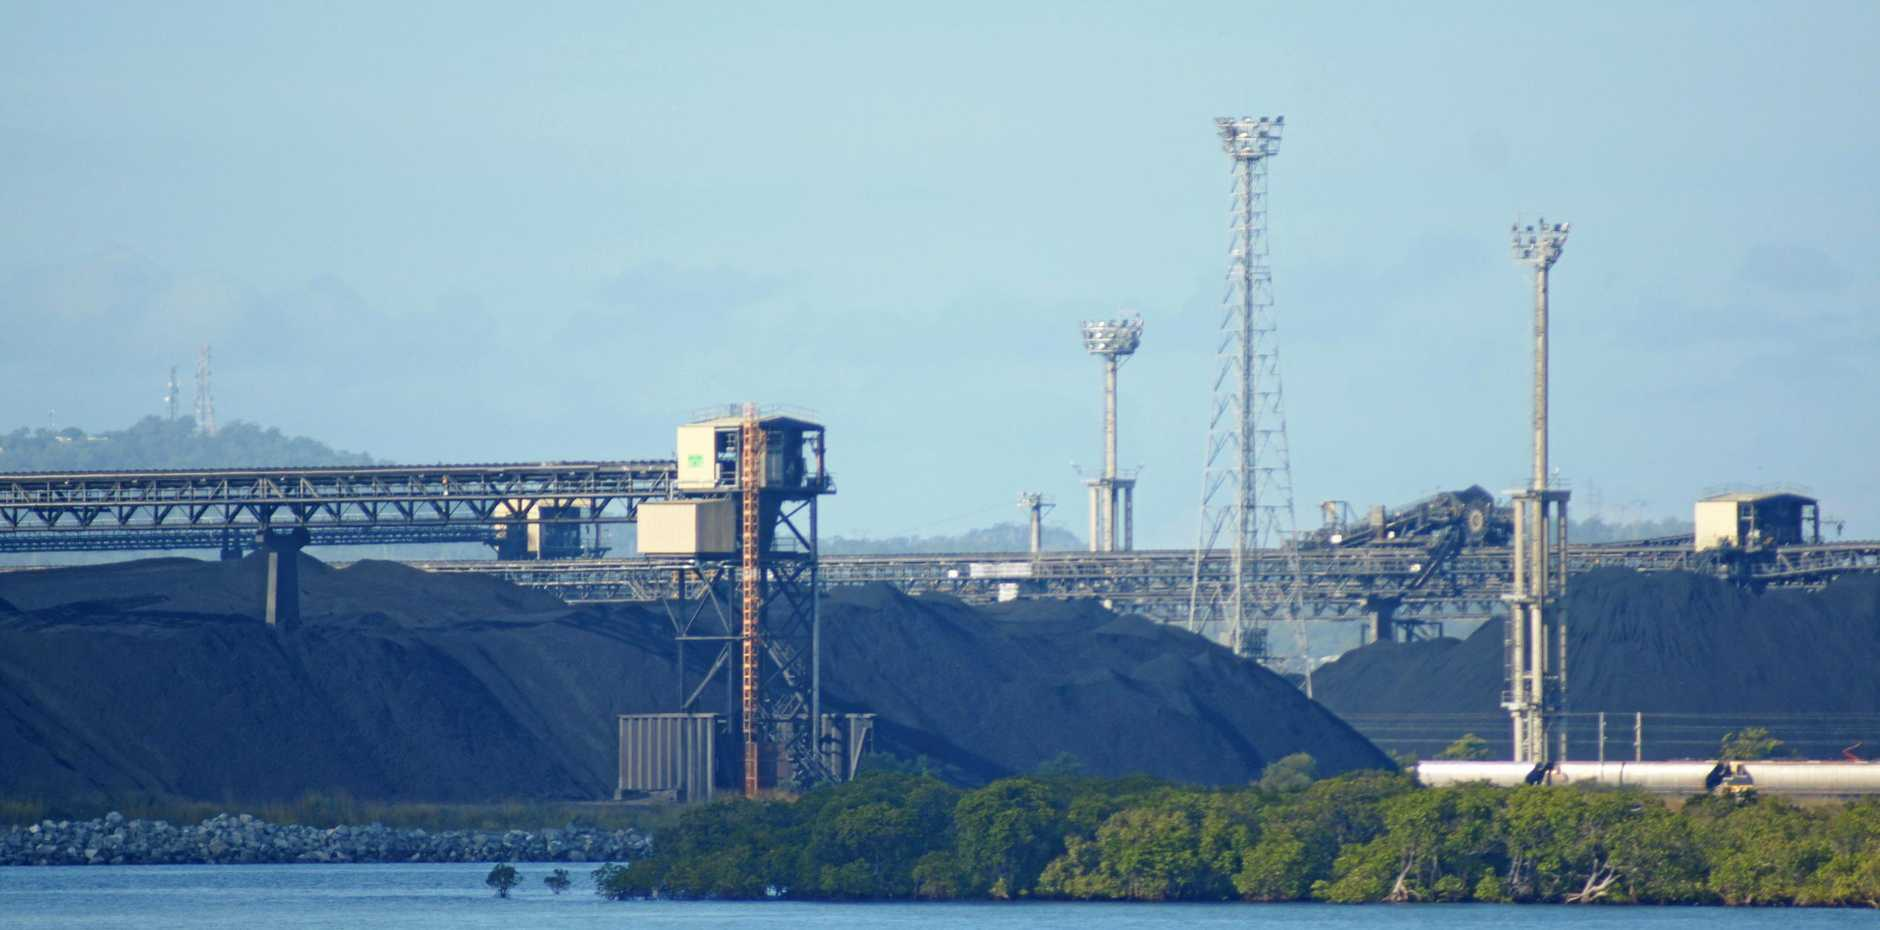 NEW ERA: The RG Tanna Coal Terminal was involved in a trial using blockchain technology initiated by Australian company CommChain.